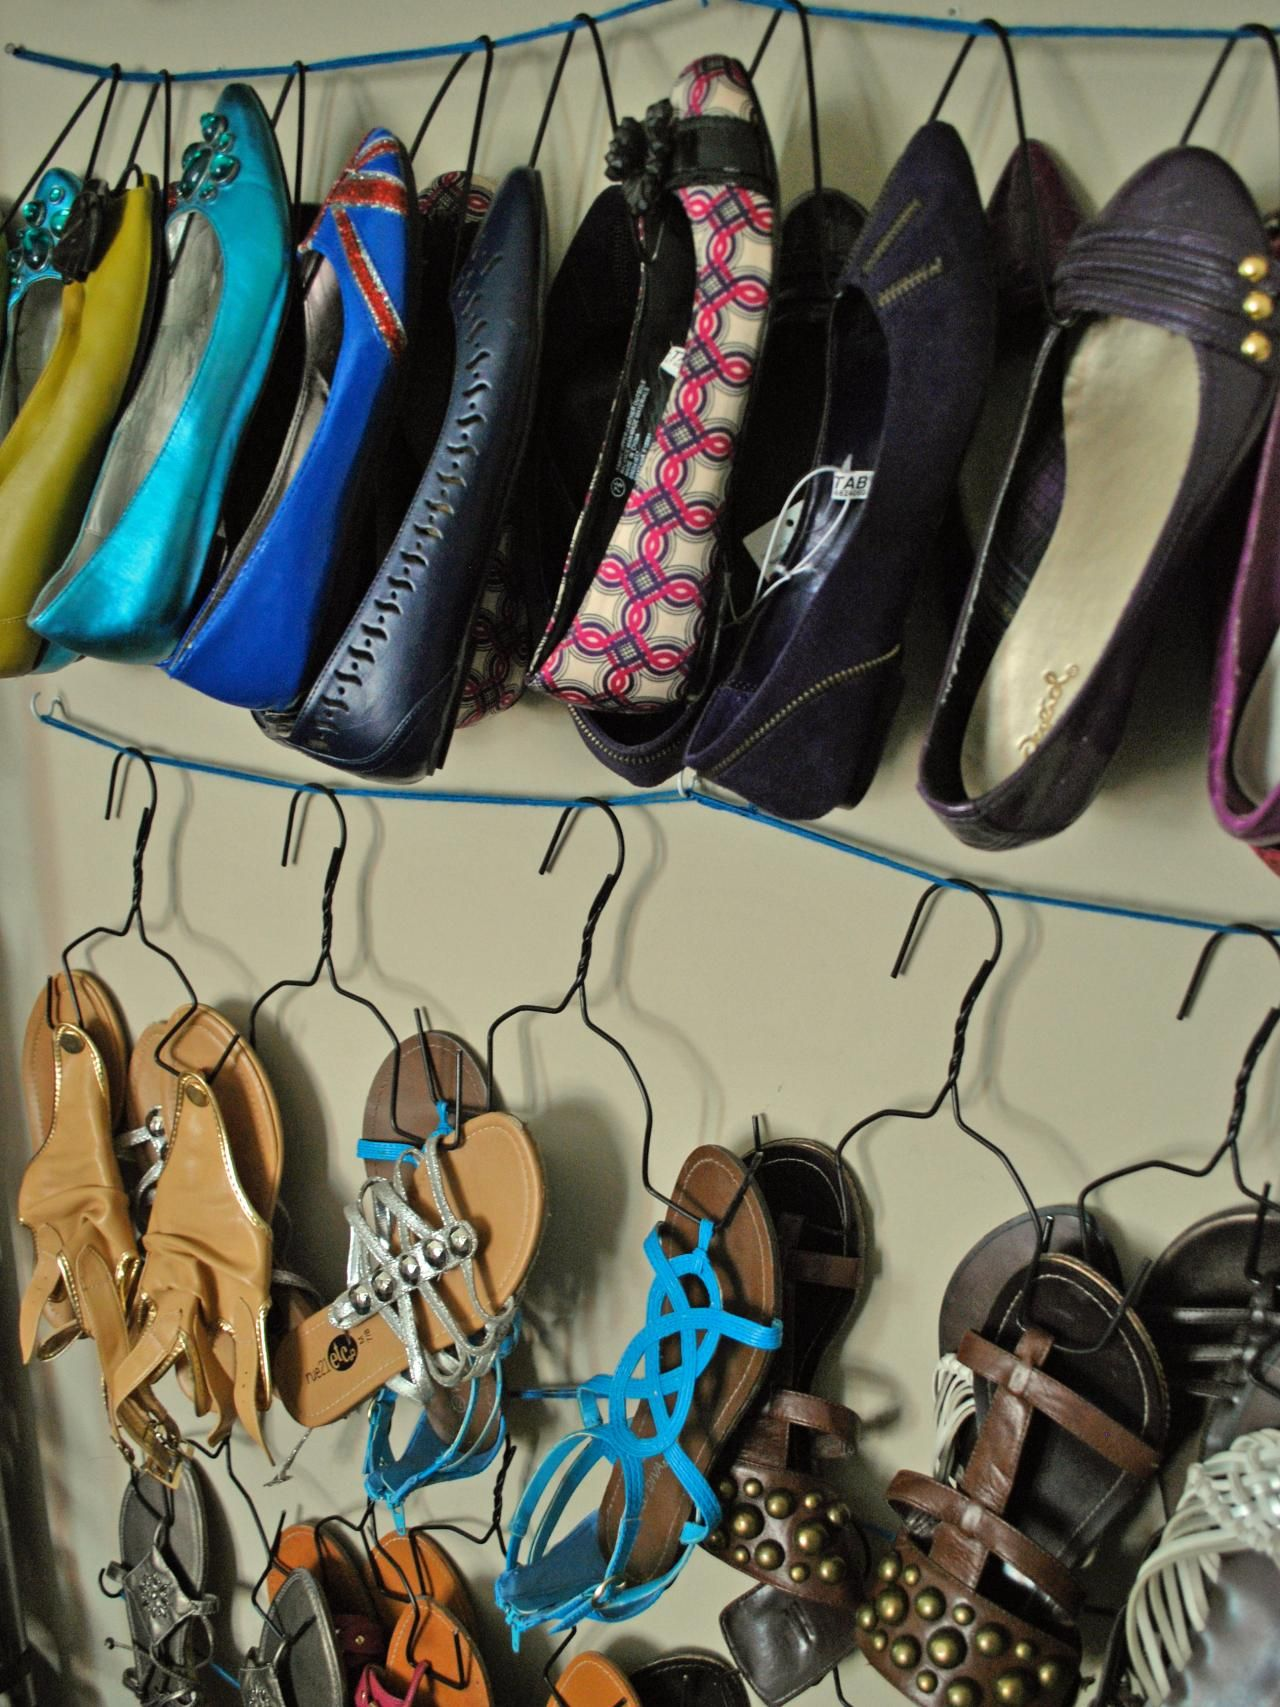 25 Shoe Organizer Ideas Decorating and